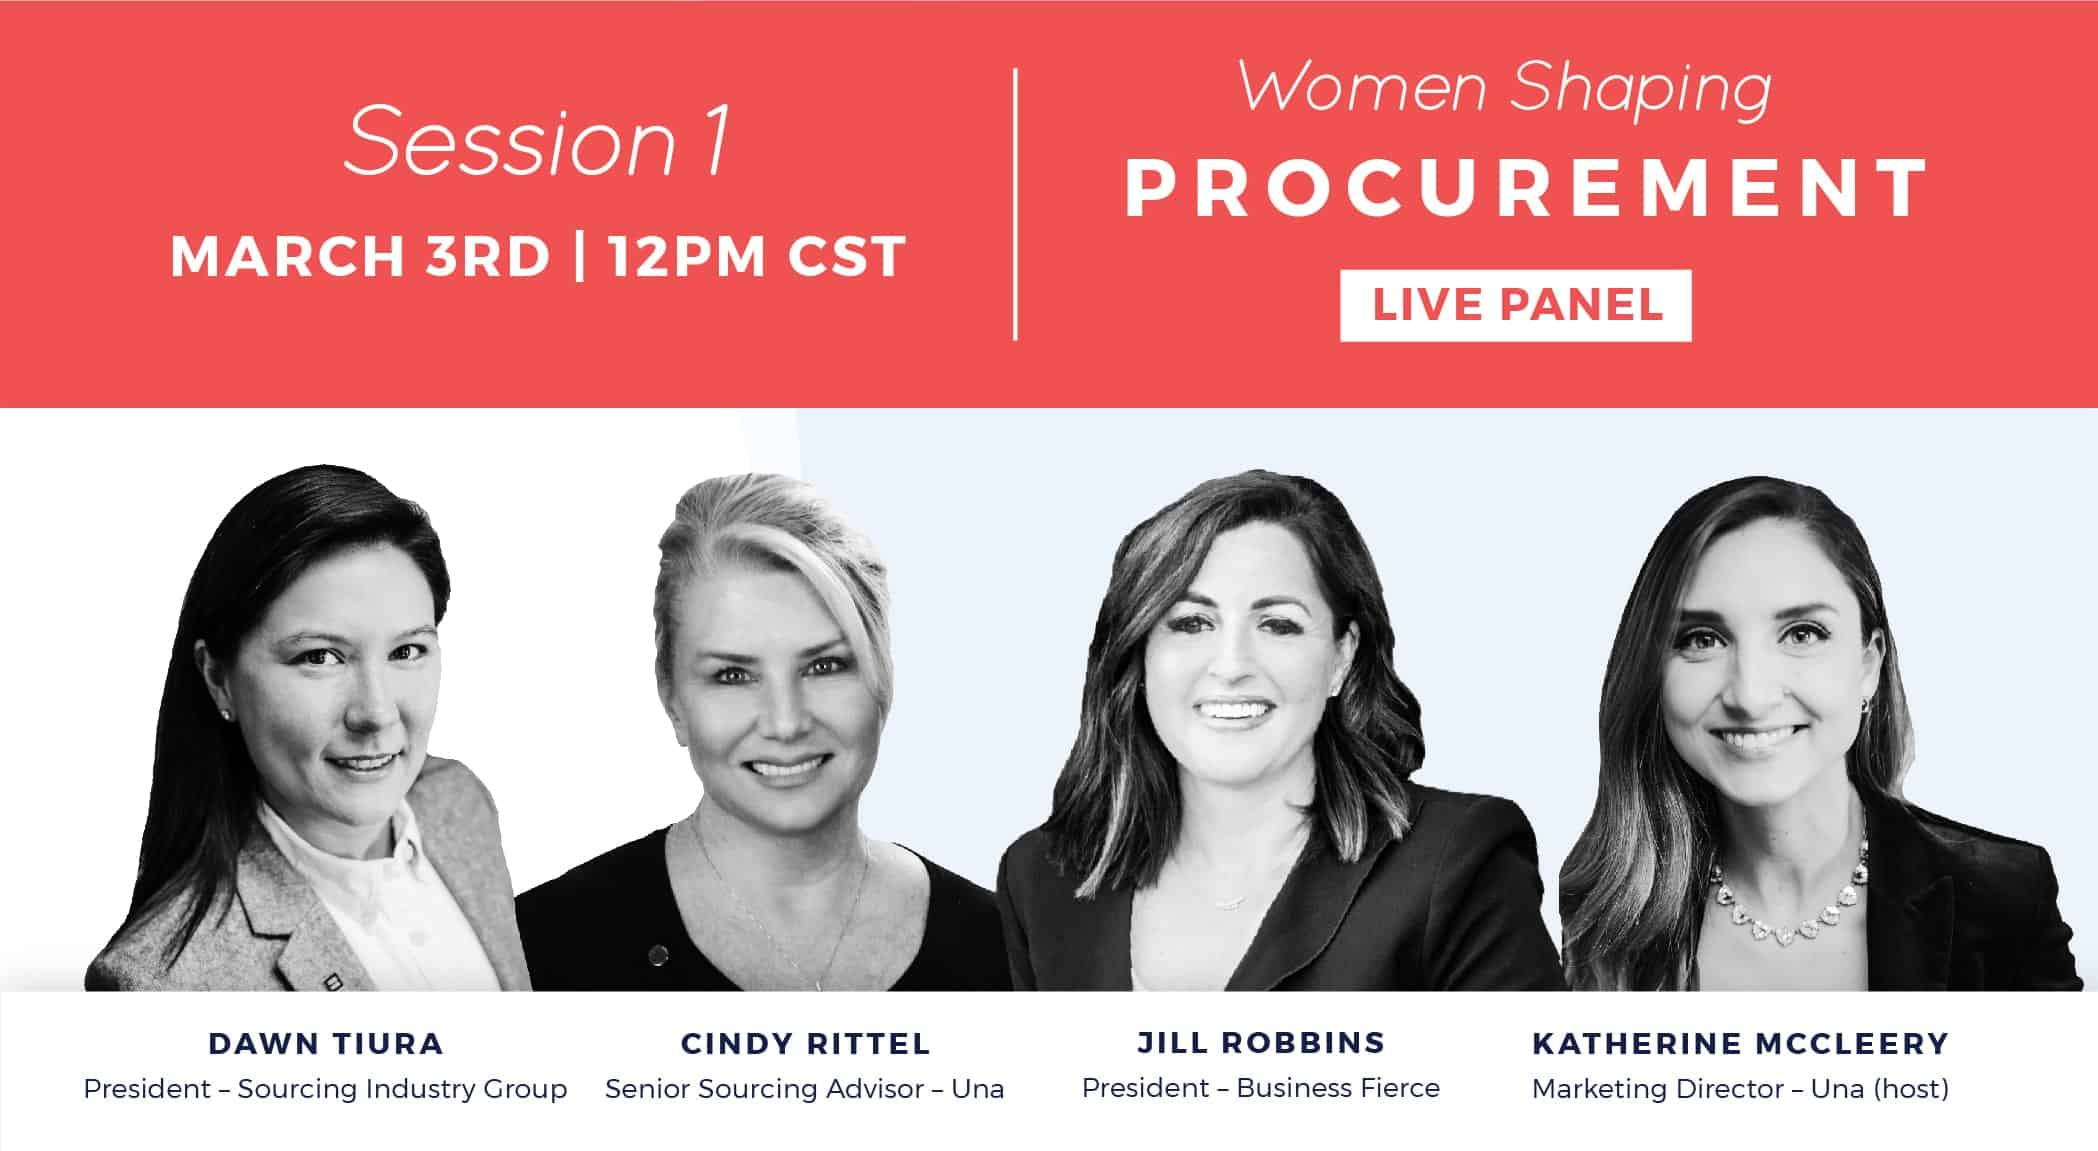 Ep 18: Women Shaping Procurement Live Panel Session #1